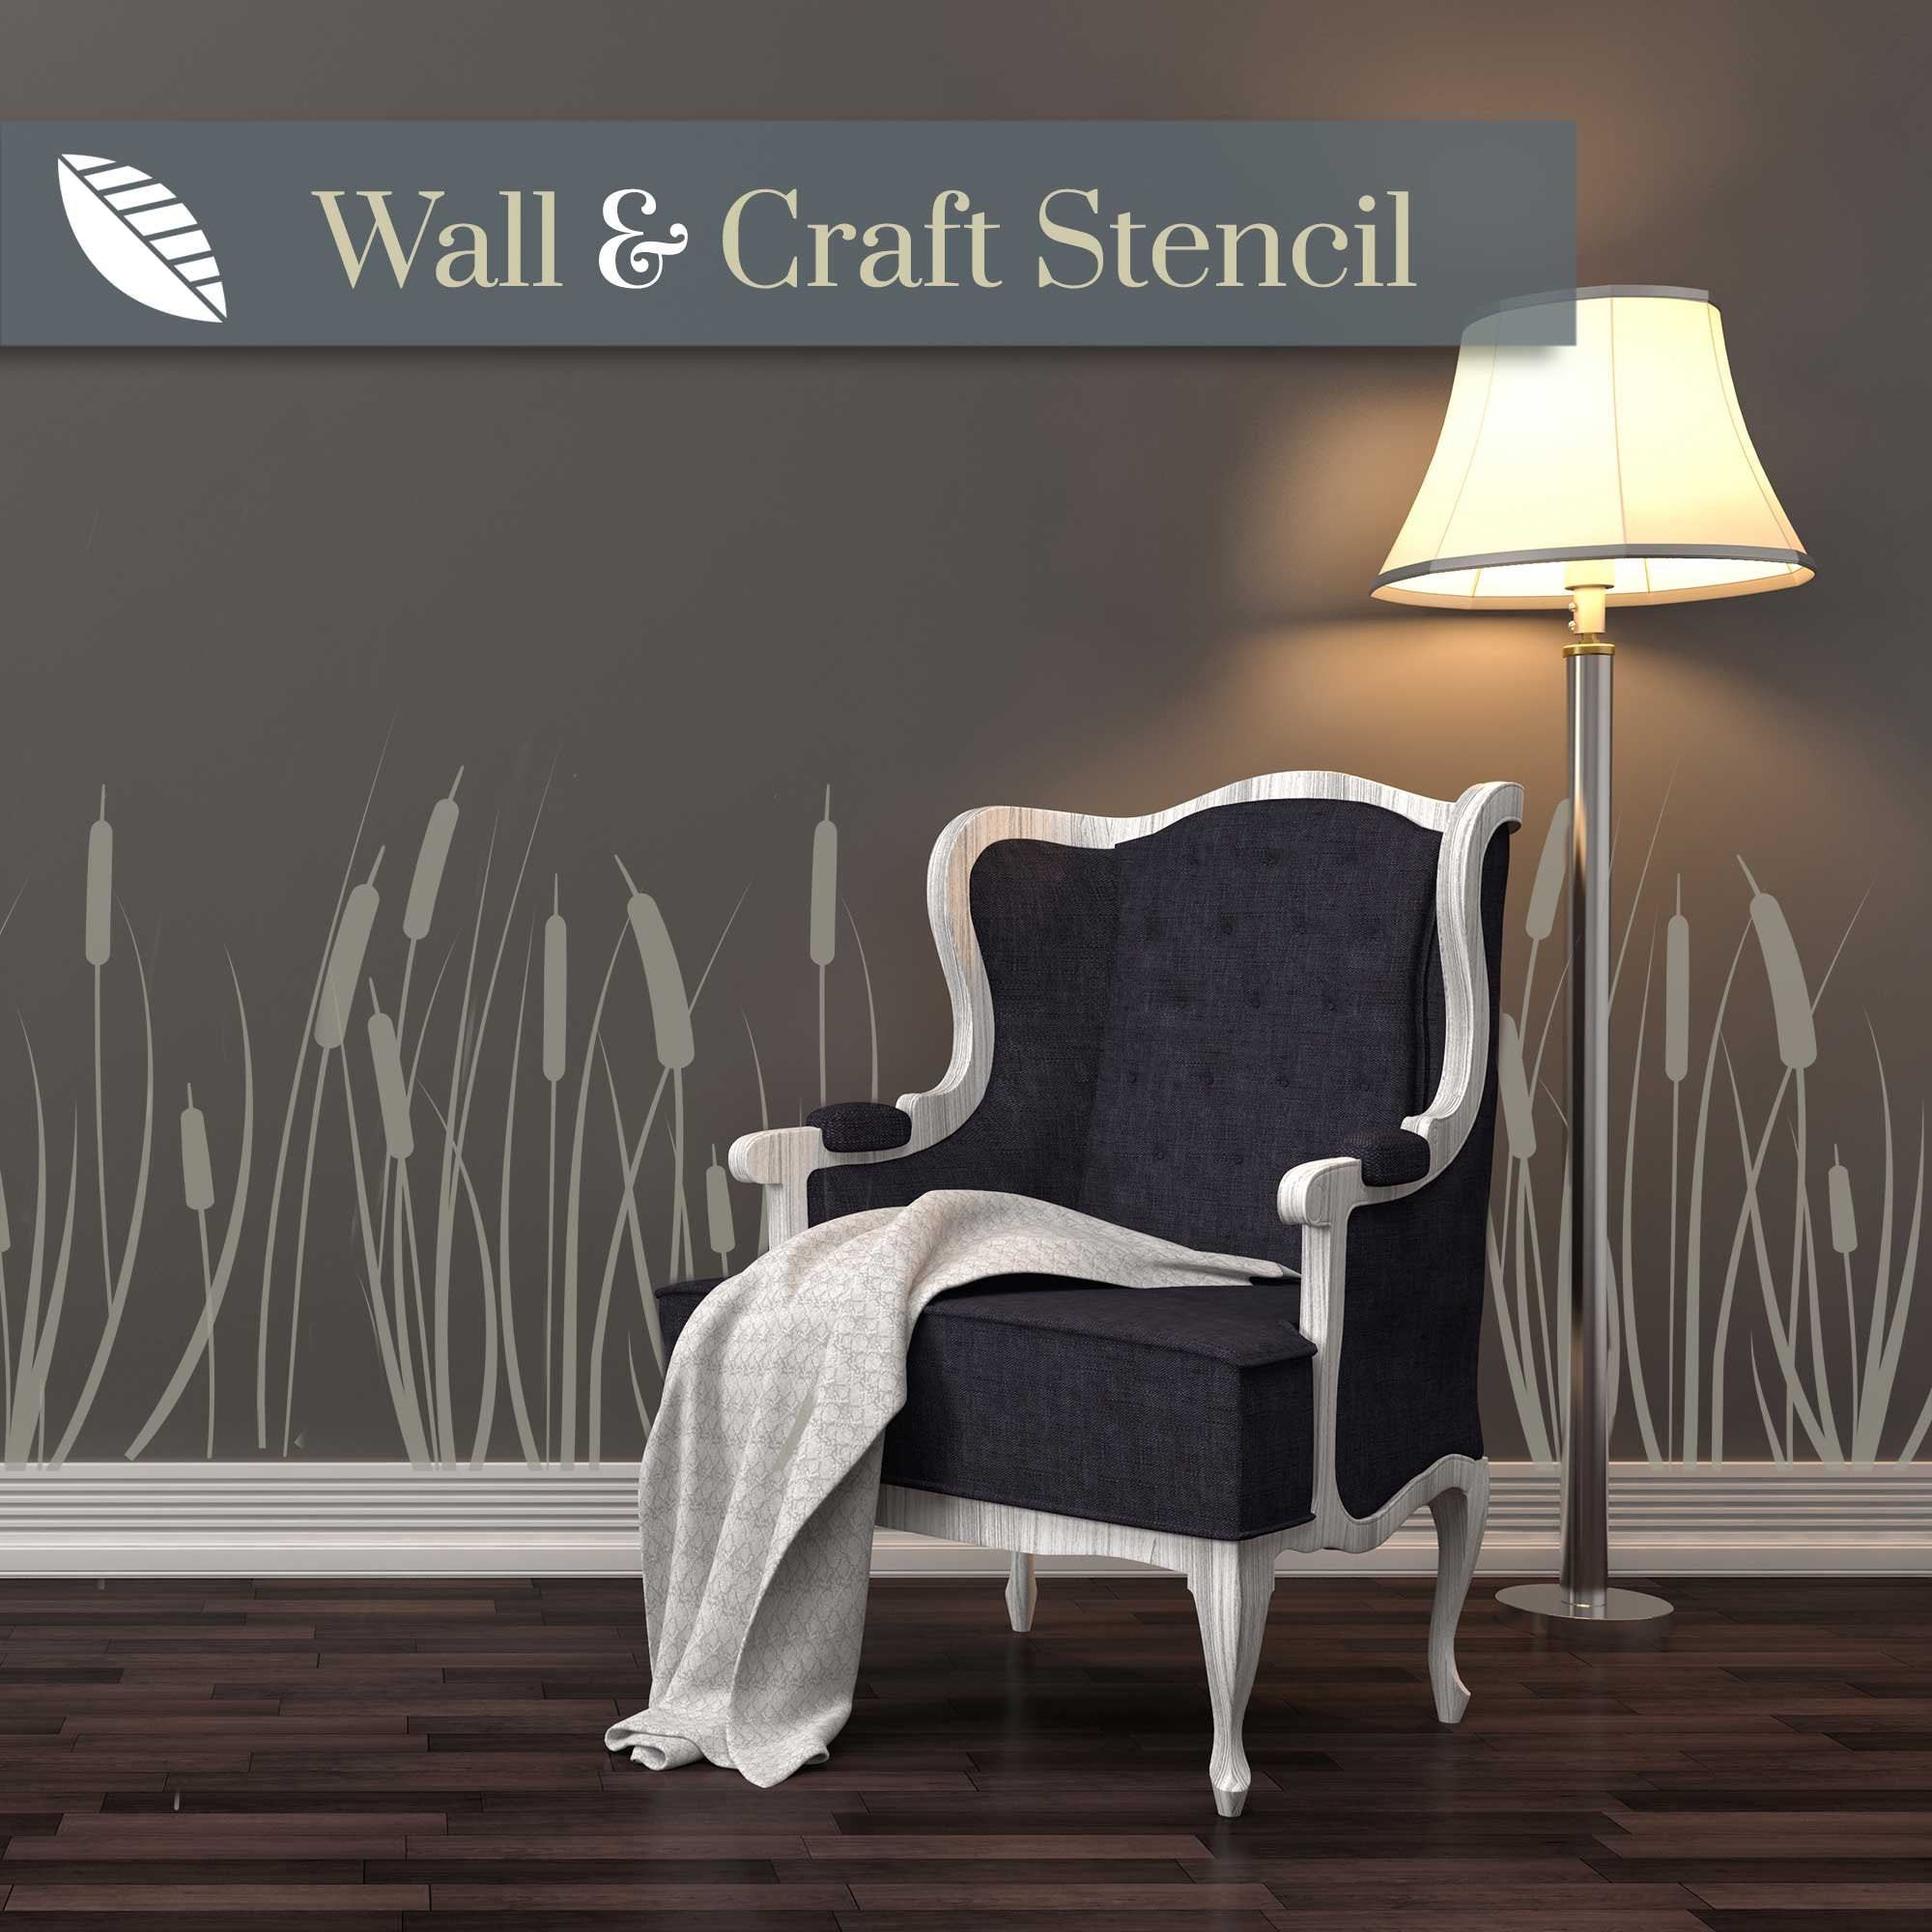 cattail wall stencil - stencil.co.uk